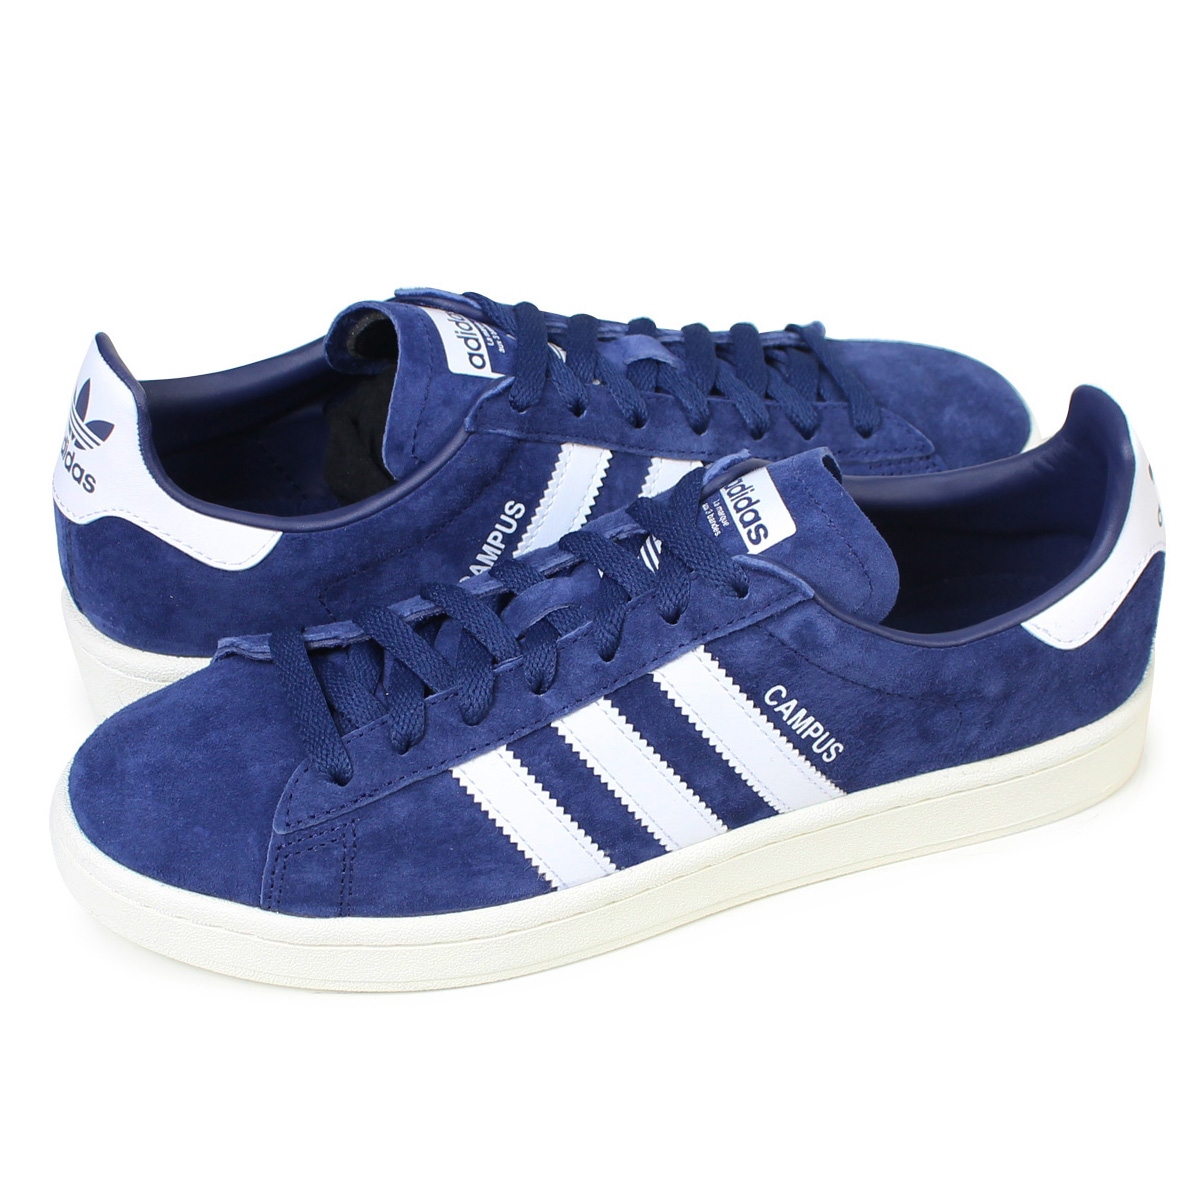 timeless design a7835 e7cd4 Adidas campus adidas originals sneakers CAMPUS men gap Dis BZ0086 shoes  blue  9 13 Shinnyu load   179